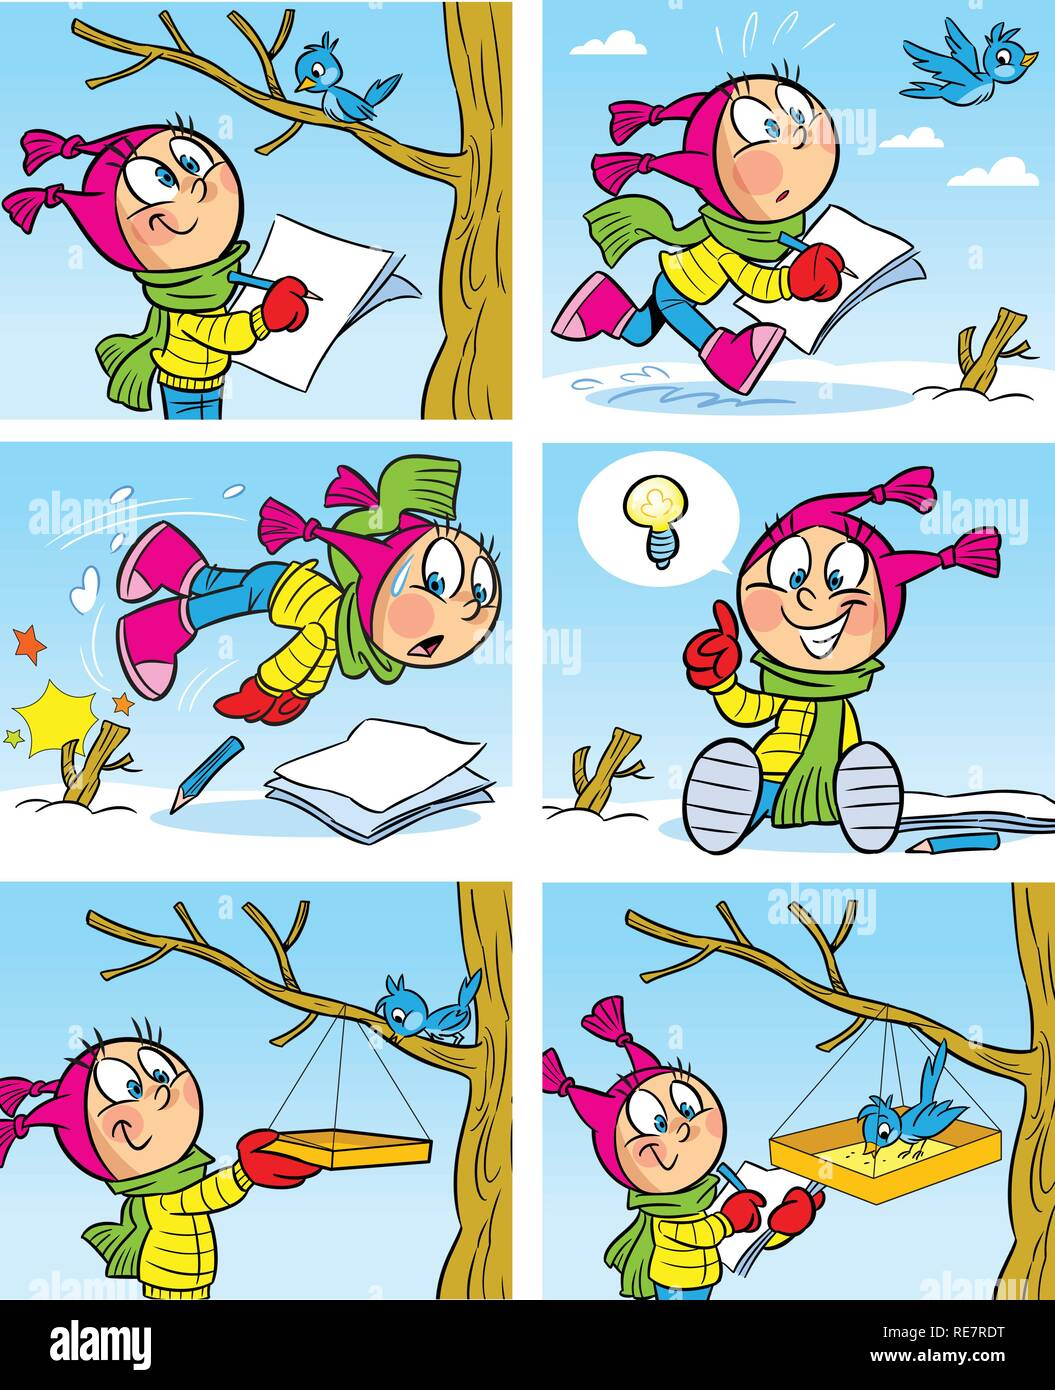 The illustration shows a girl who draws a bird. She hung a bird feeder for the bird. The form of comics, cartoon style, on separate layers. - Stock Image